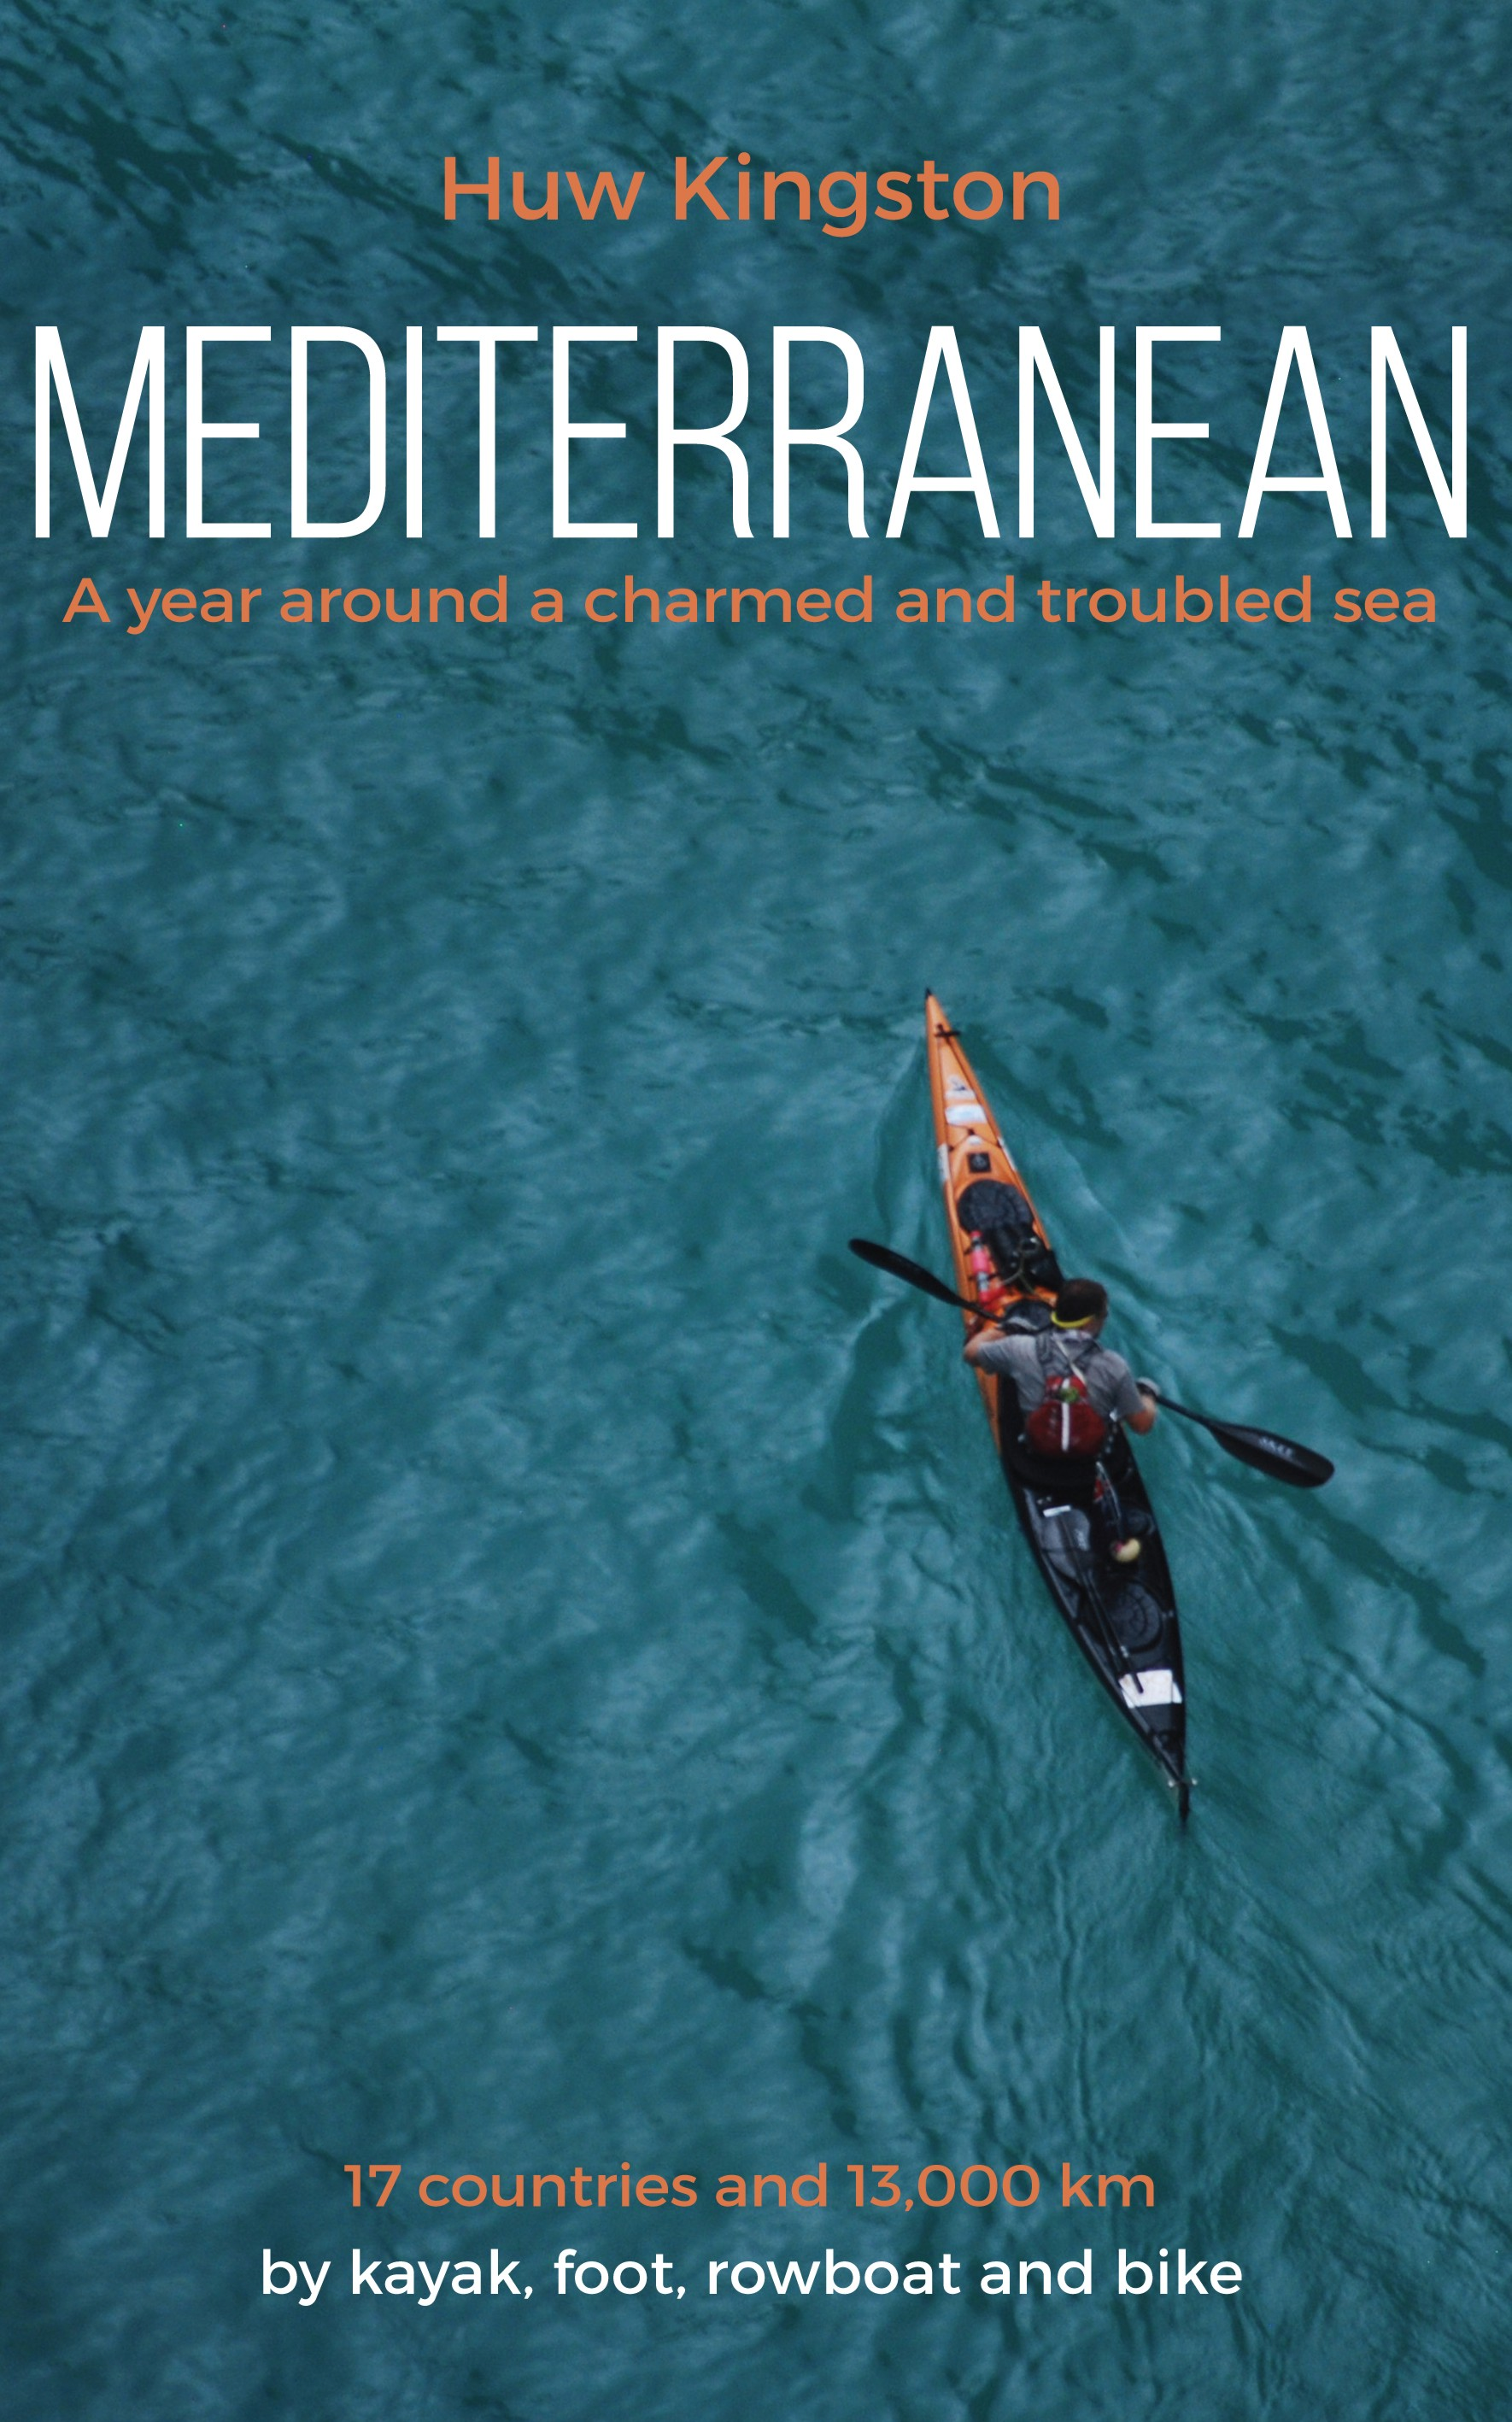 Huw Kingston On Circumnavigating The Mediterranean